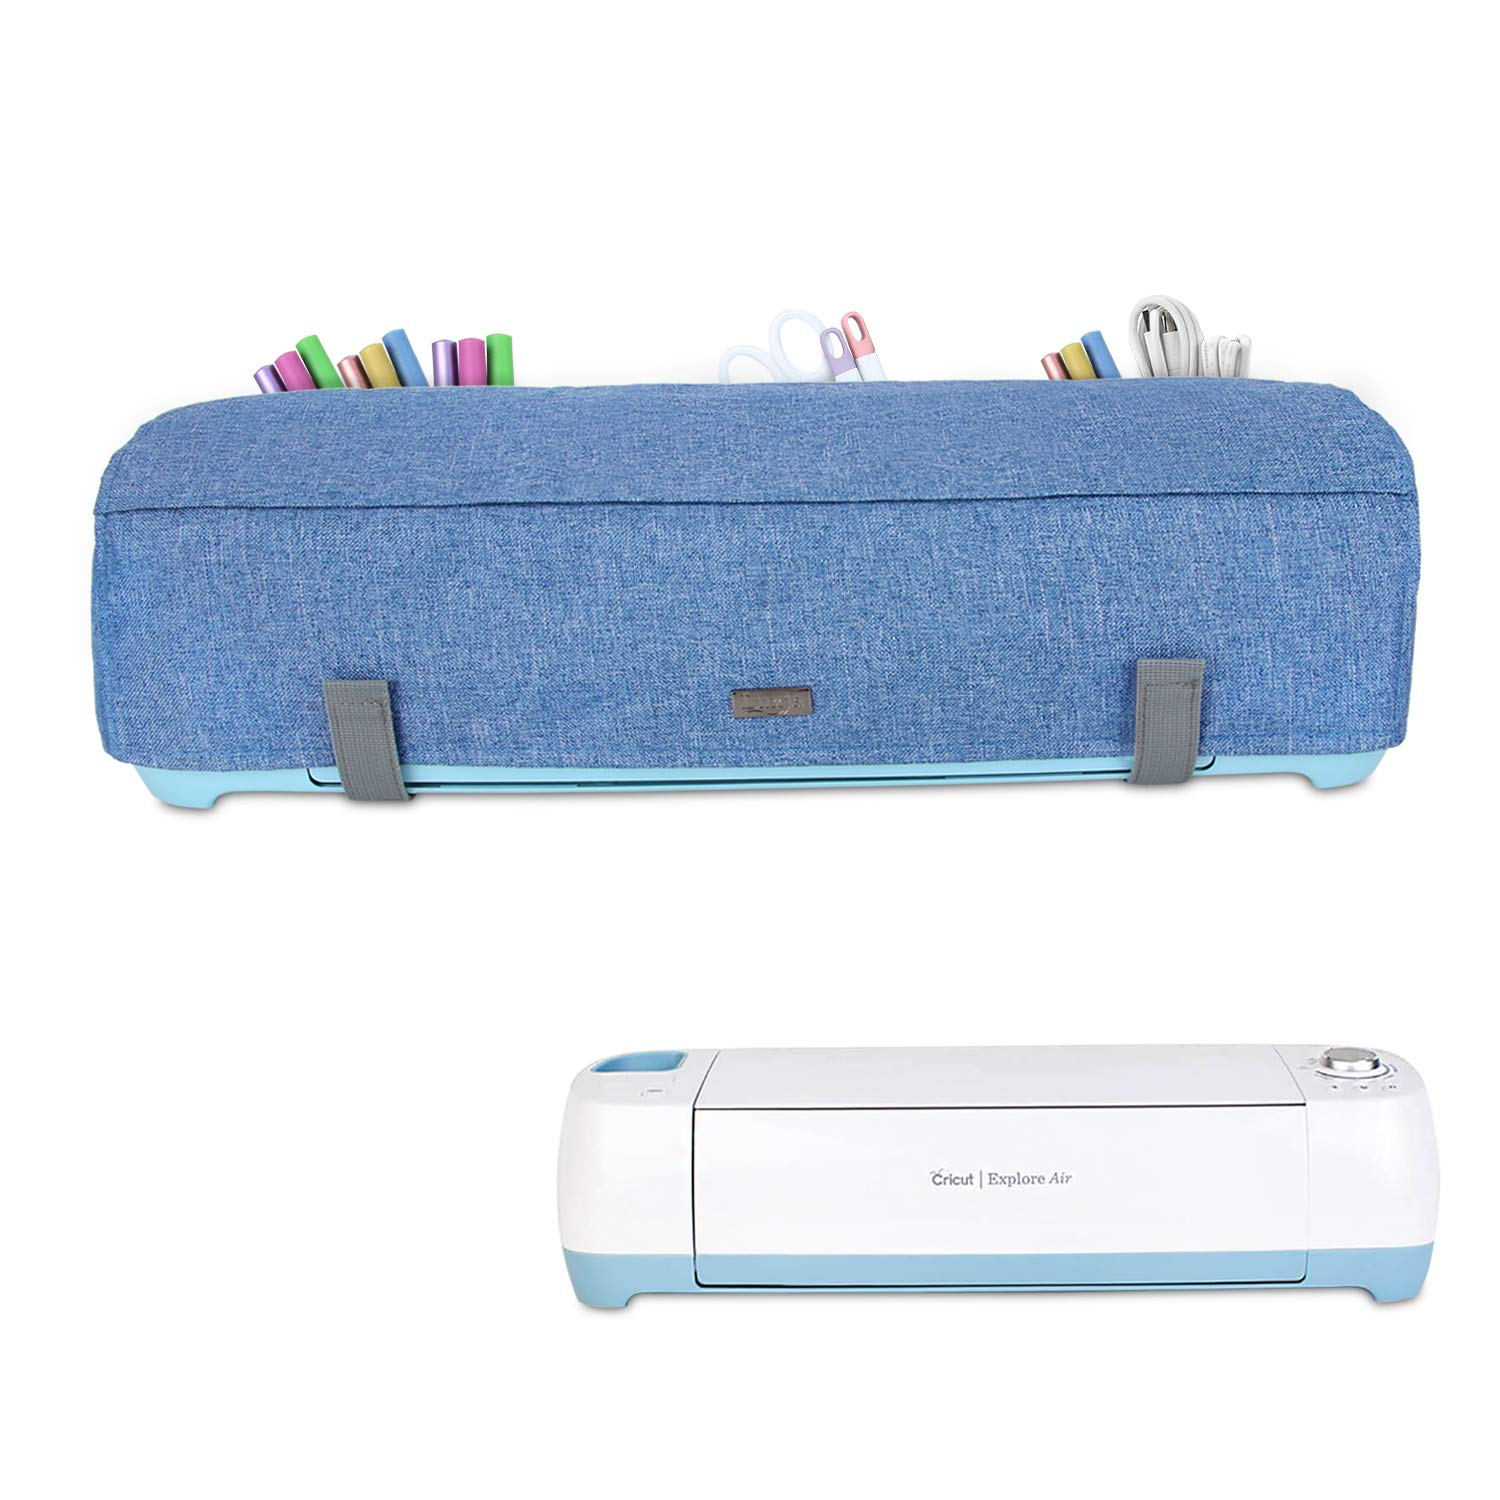 Dust Cover with Back Pockets for Accessories Luxja Dust Cover Compatible with Cricut Explore Air and Explore Air 2 Green